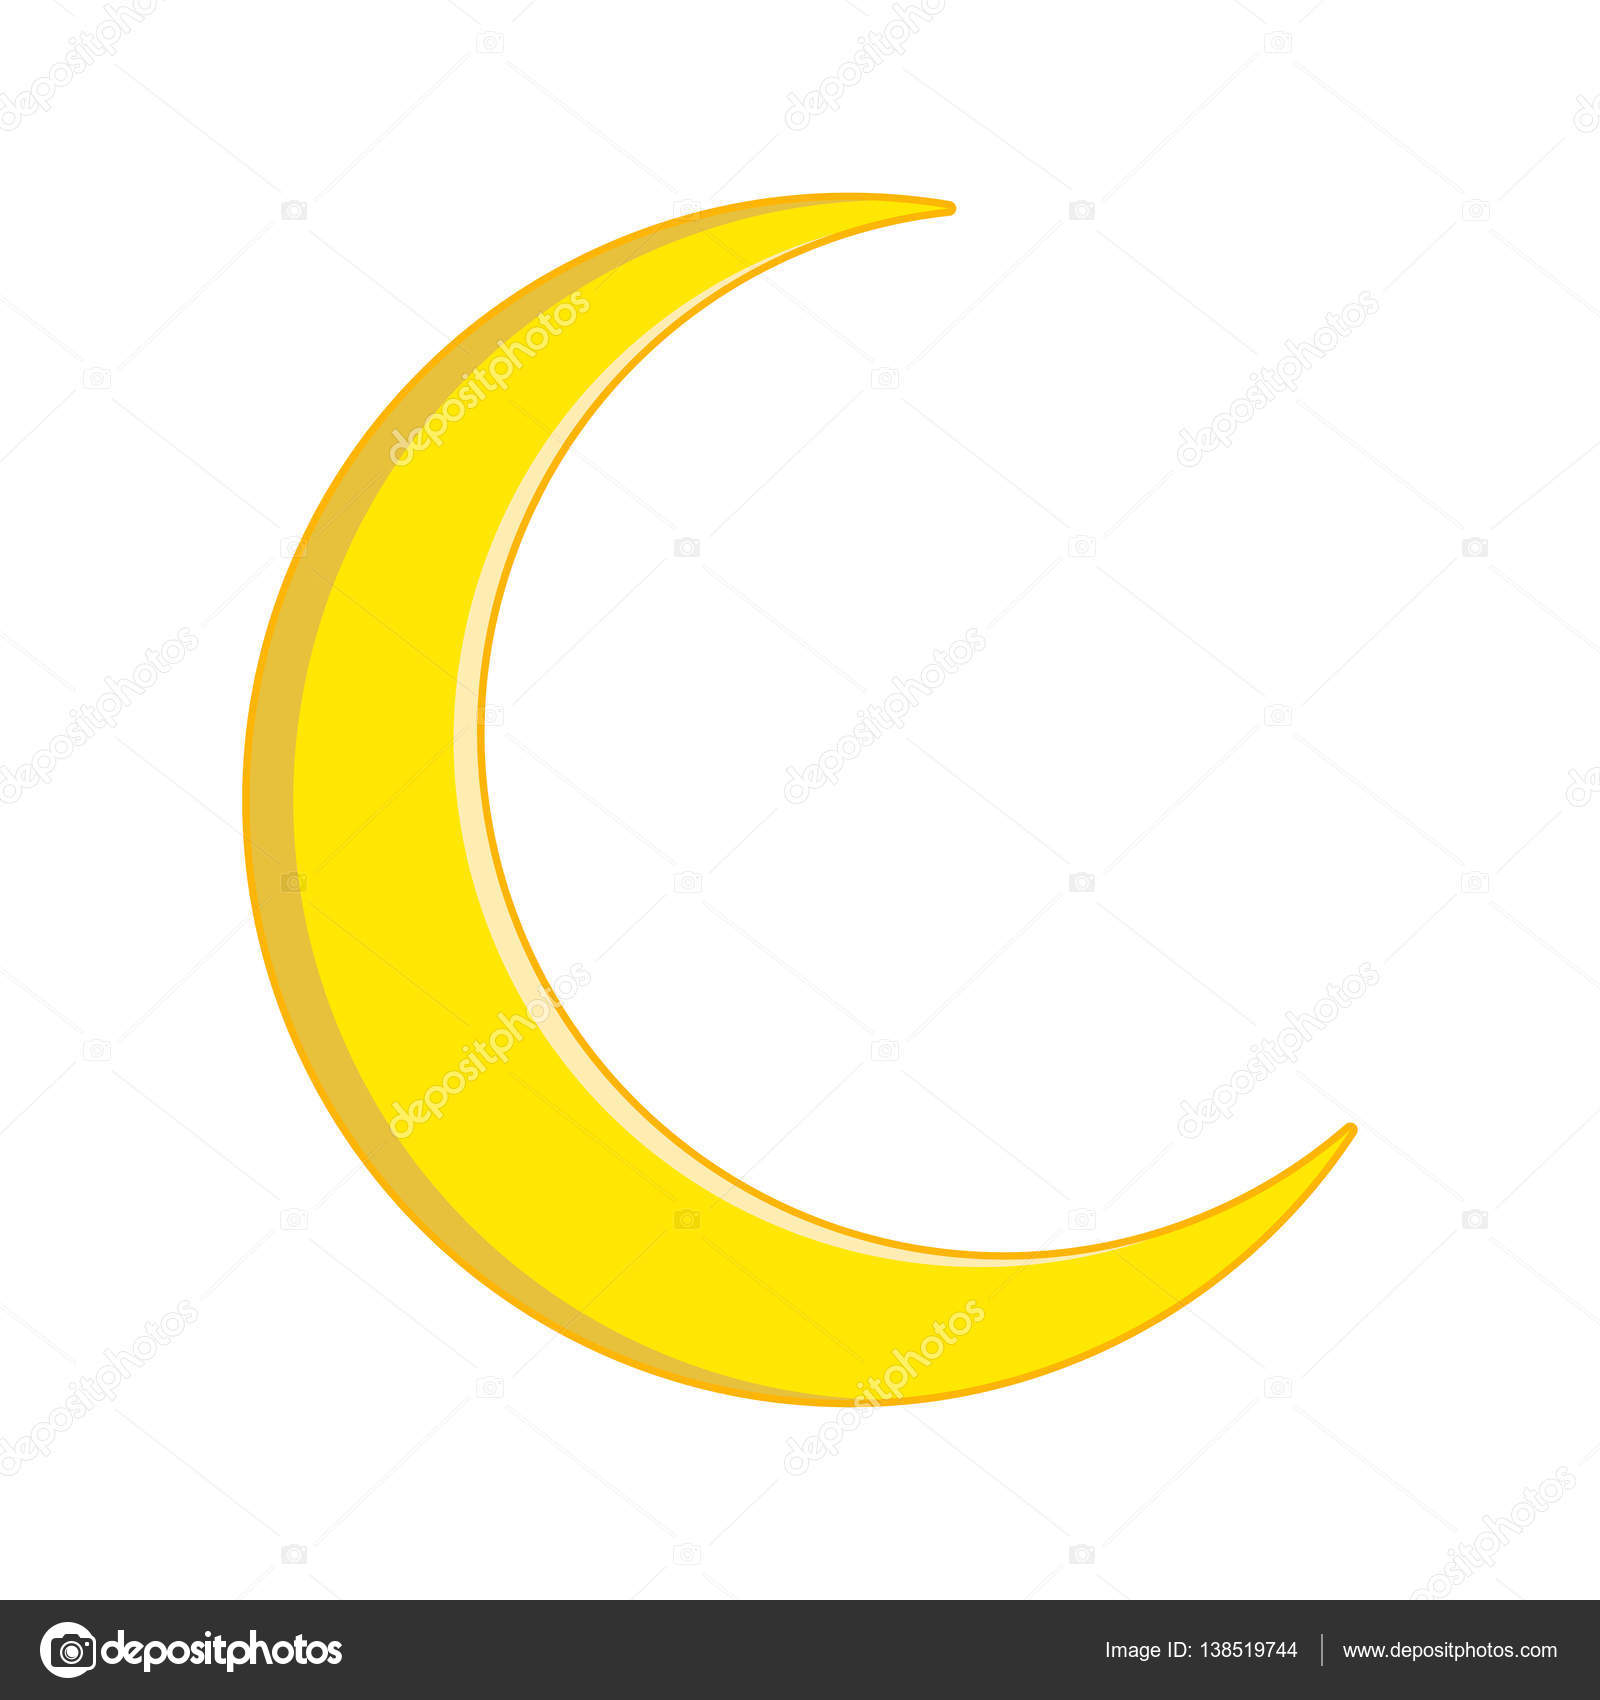 Crescent moon vector symbol icon design stock vector newelle crescent moon vector symbol icon design beautiful illustration isolated on white backgroun vector by newelle biocorpaavc Gallery